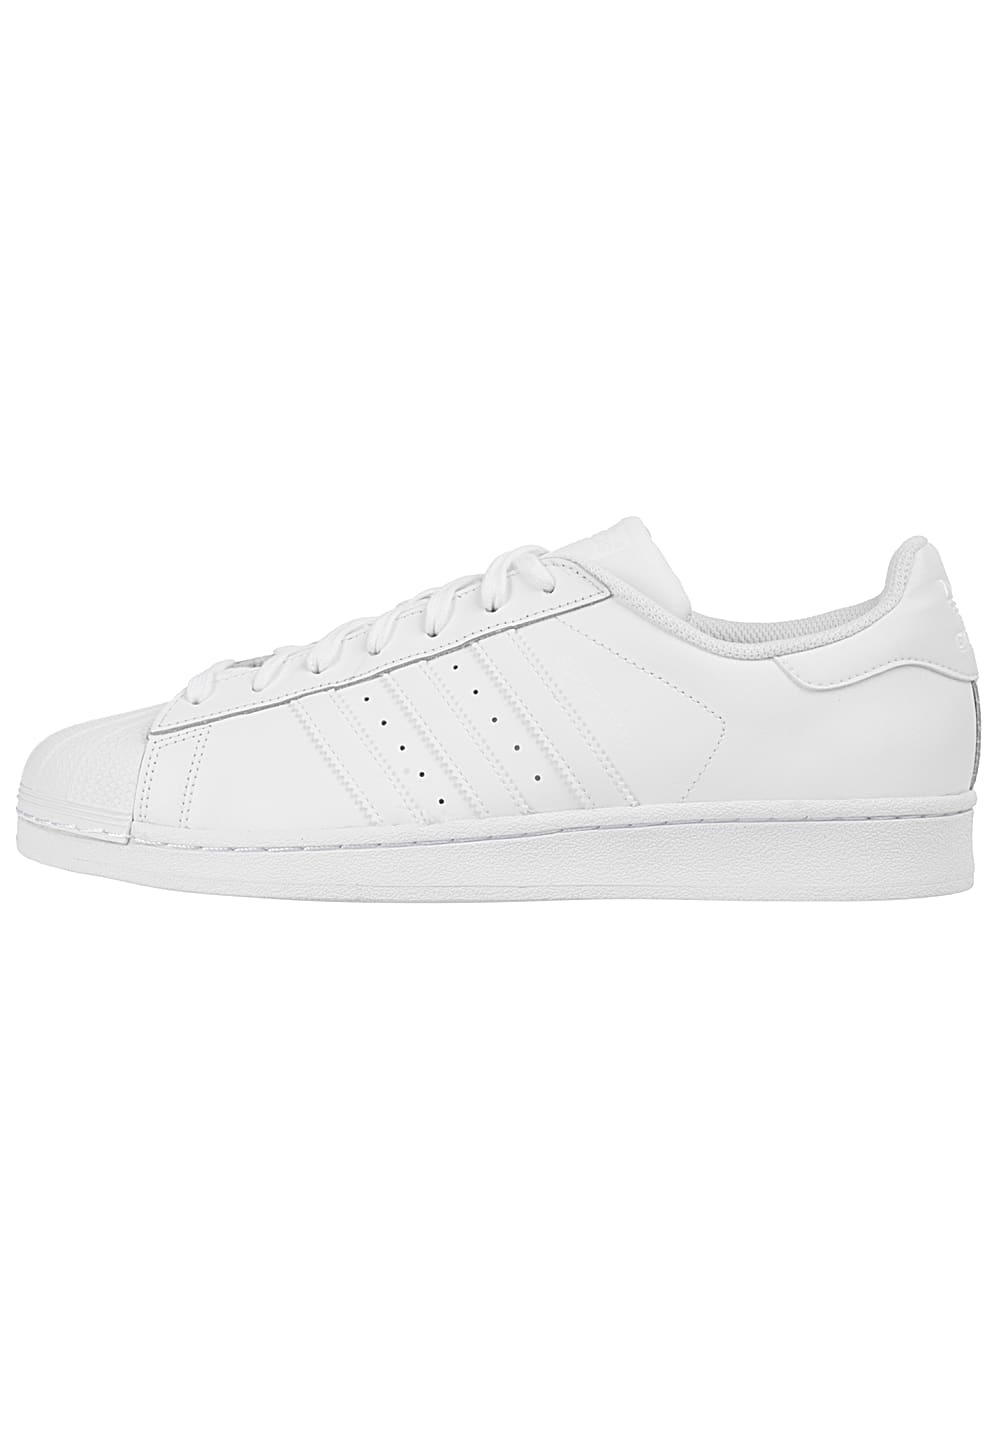 Adidas SUPERSTAR FOUNDATION Sneakers wit glad leer